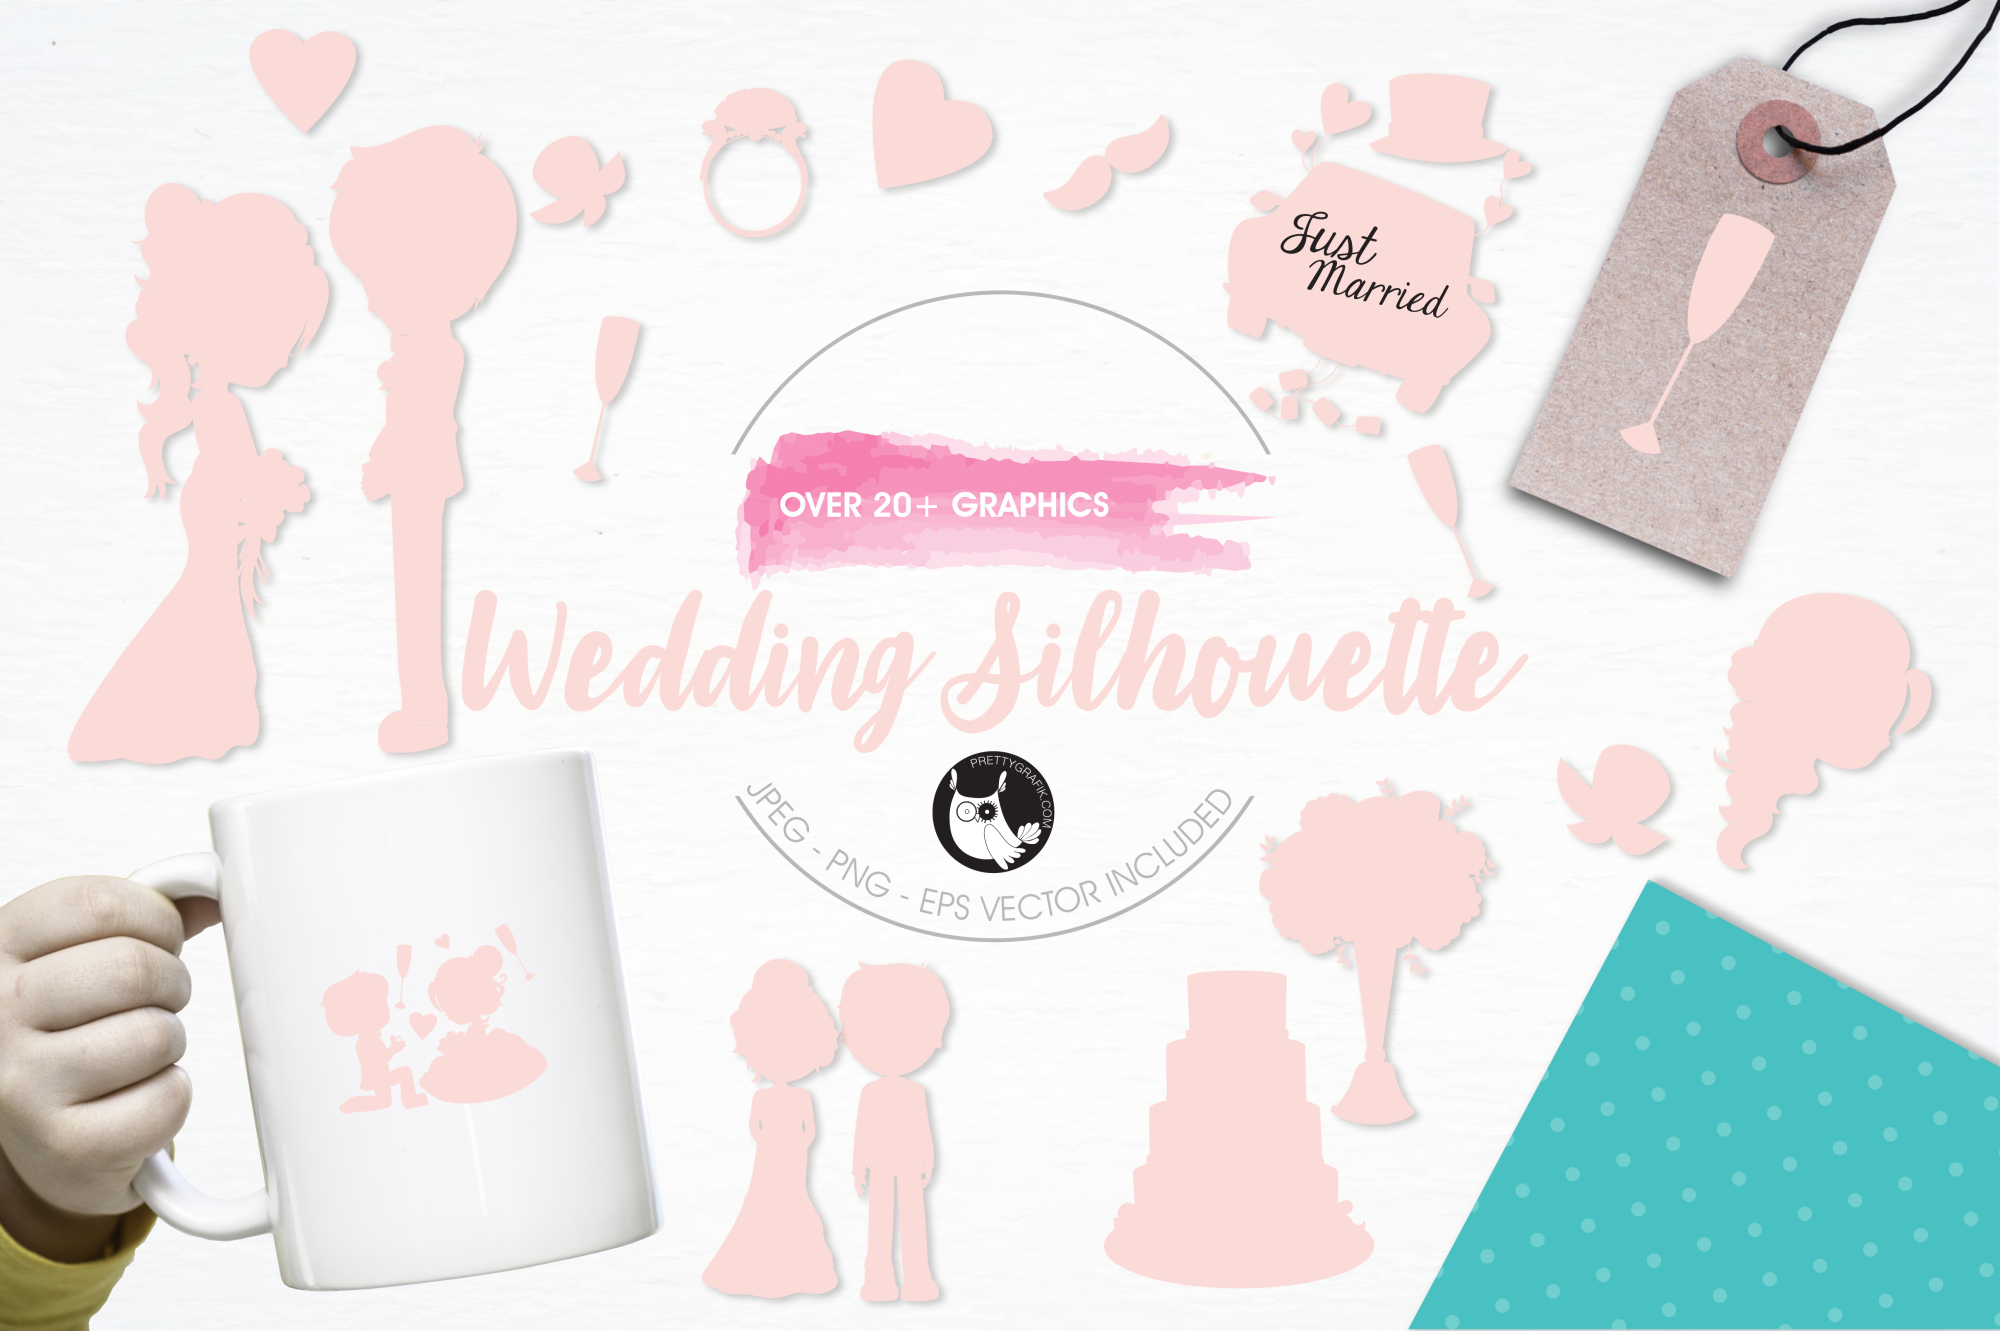 Wedding Silhouette graphics and illustrations example image 1